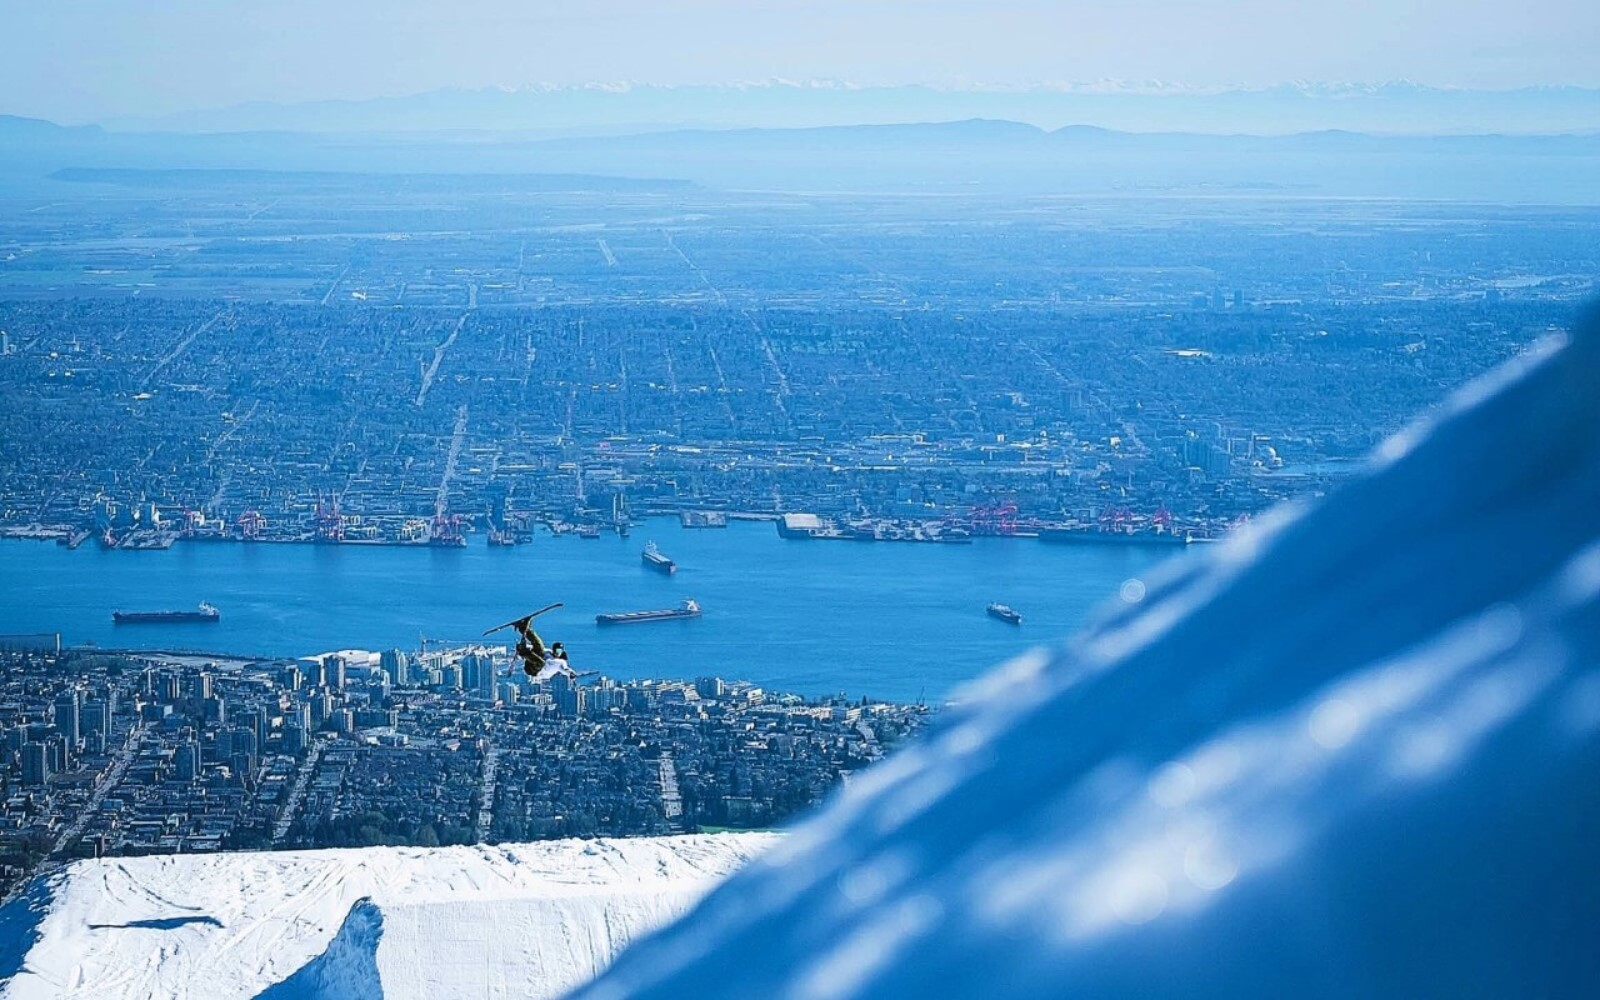 A skier jumps on Grouse Mountain in front of the Vancouver skyline